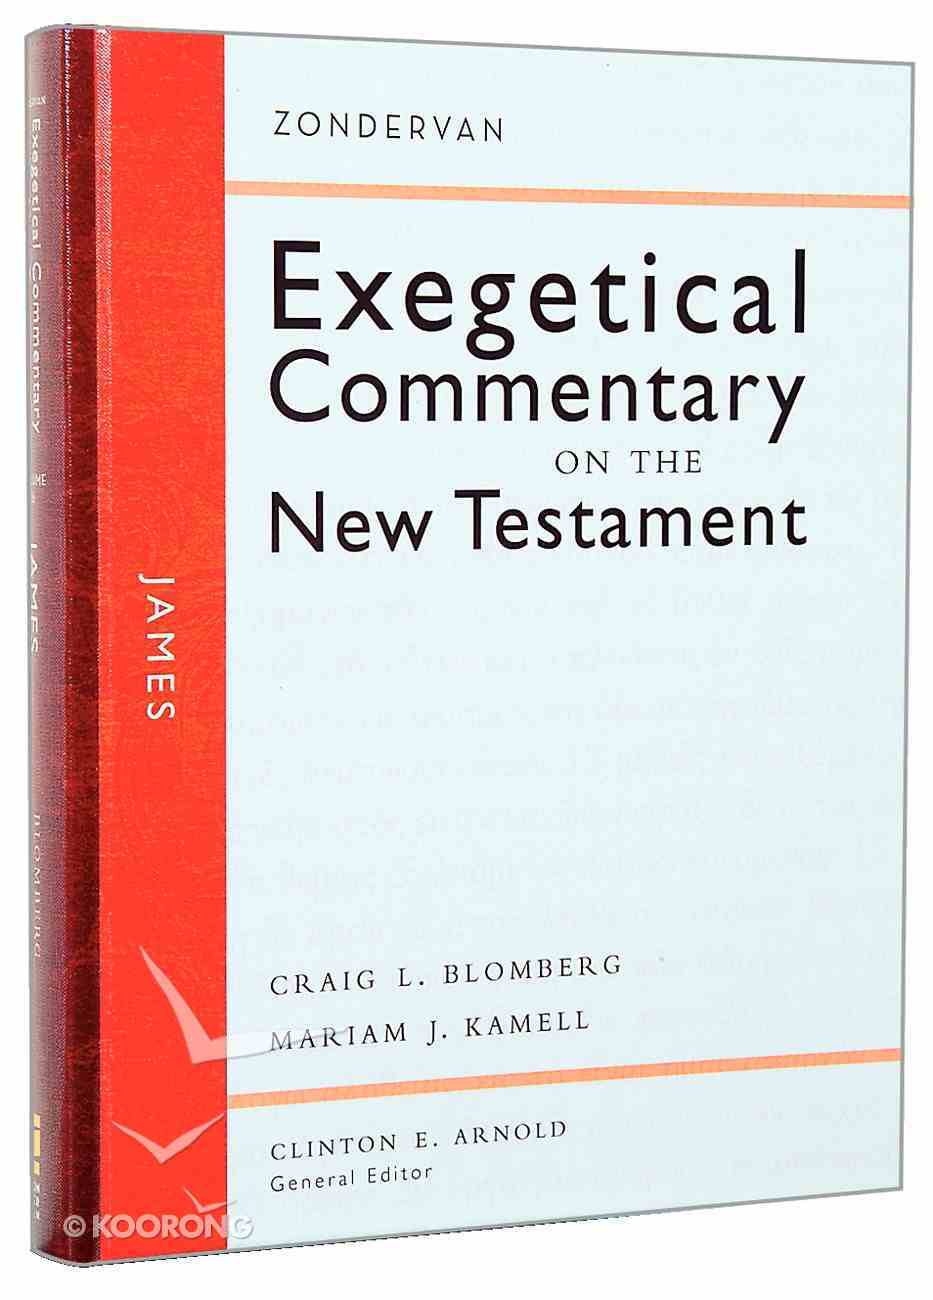 James (Zondervan Exegetical Commentary Series On The New Testament) Hardback